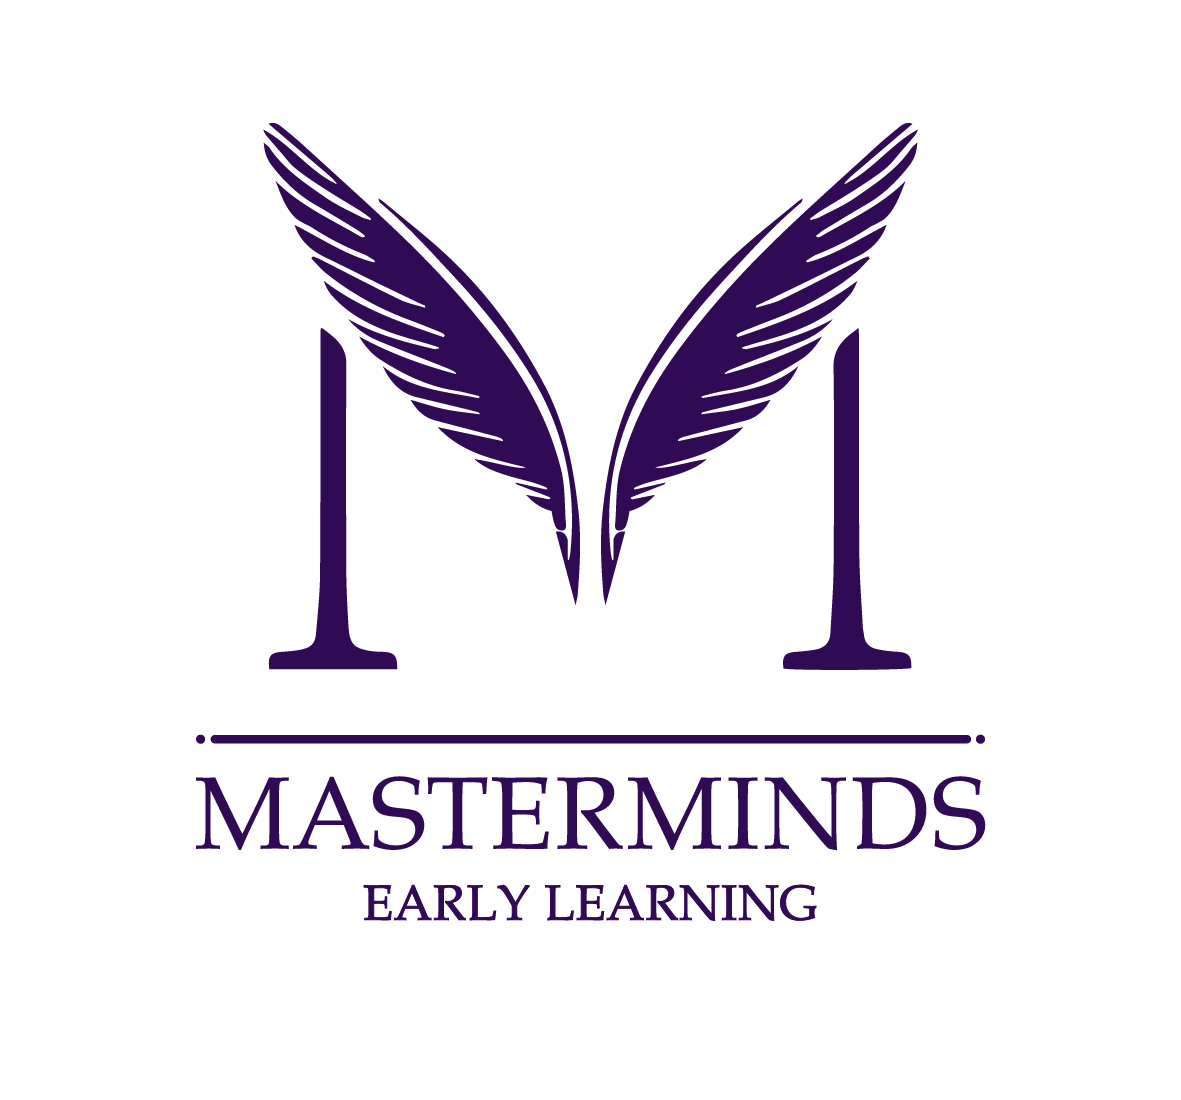 Masterminds Early Learning's Online Preschool Delivers Private Education at a Fraction of the Cost